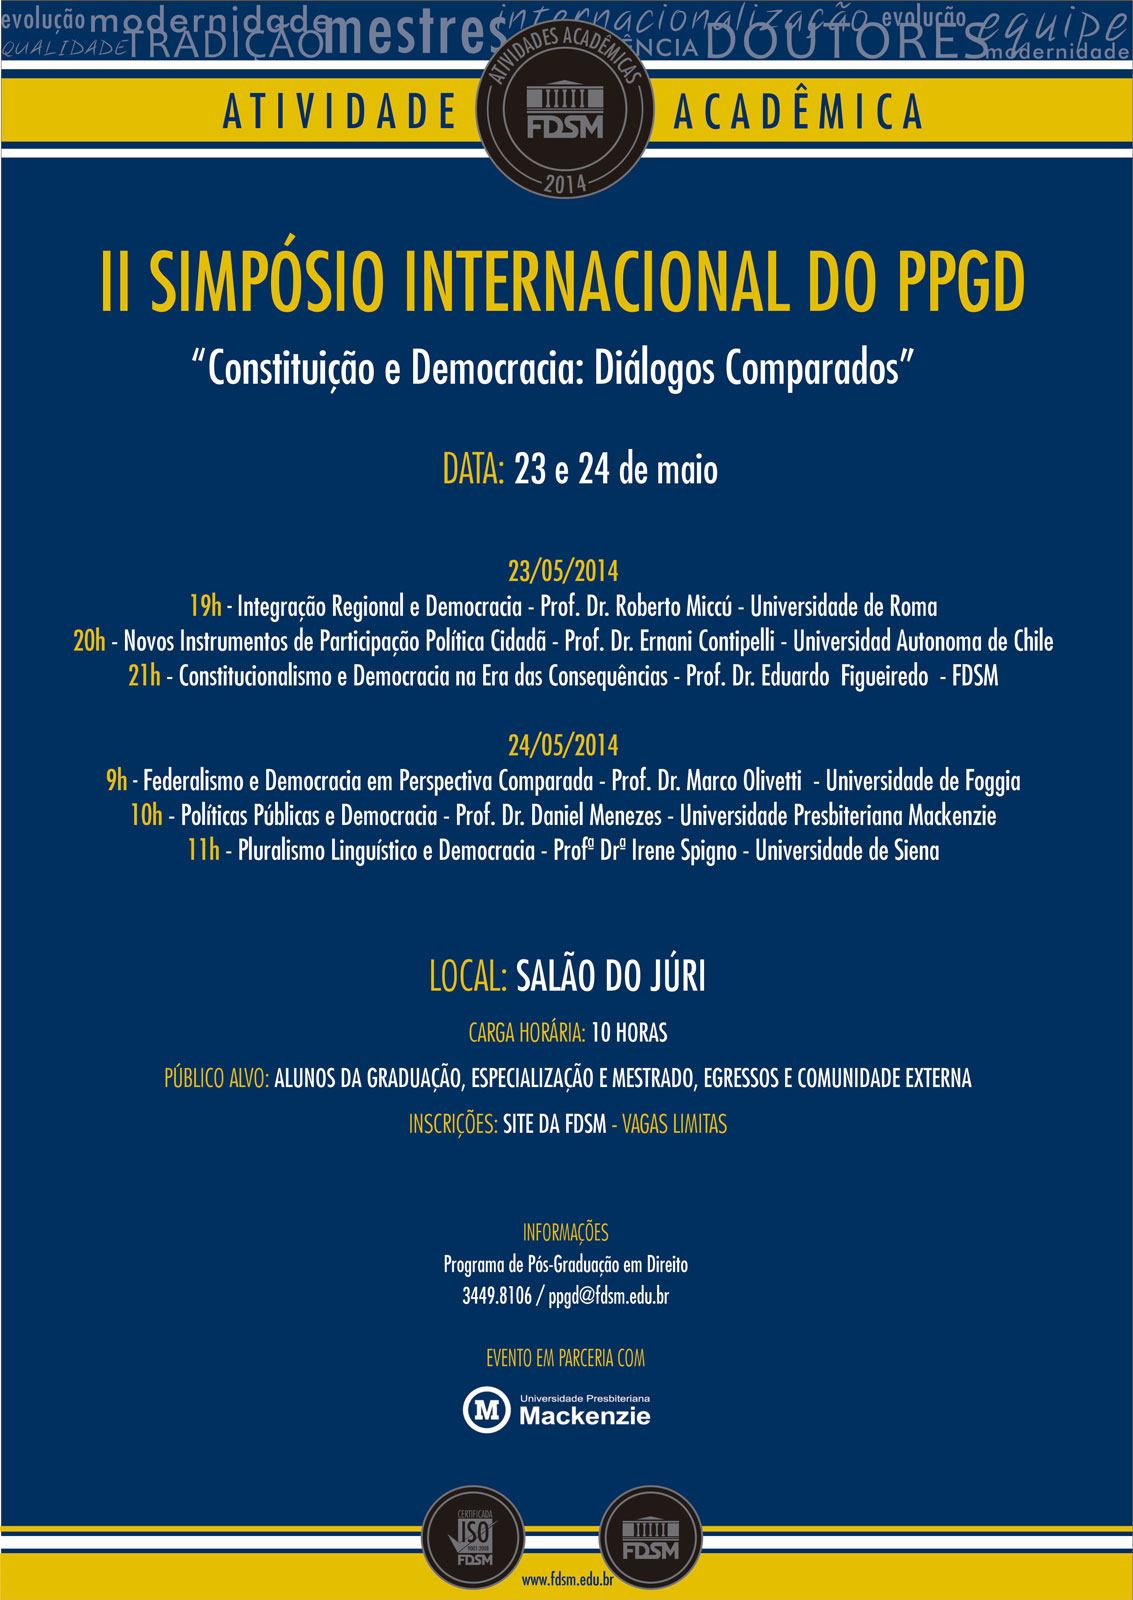 II SIMPÓSIO INTERNACIONAL DO PPGD